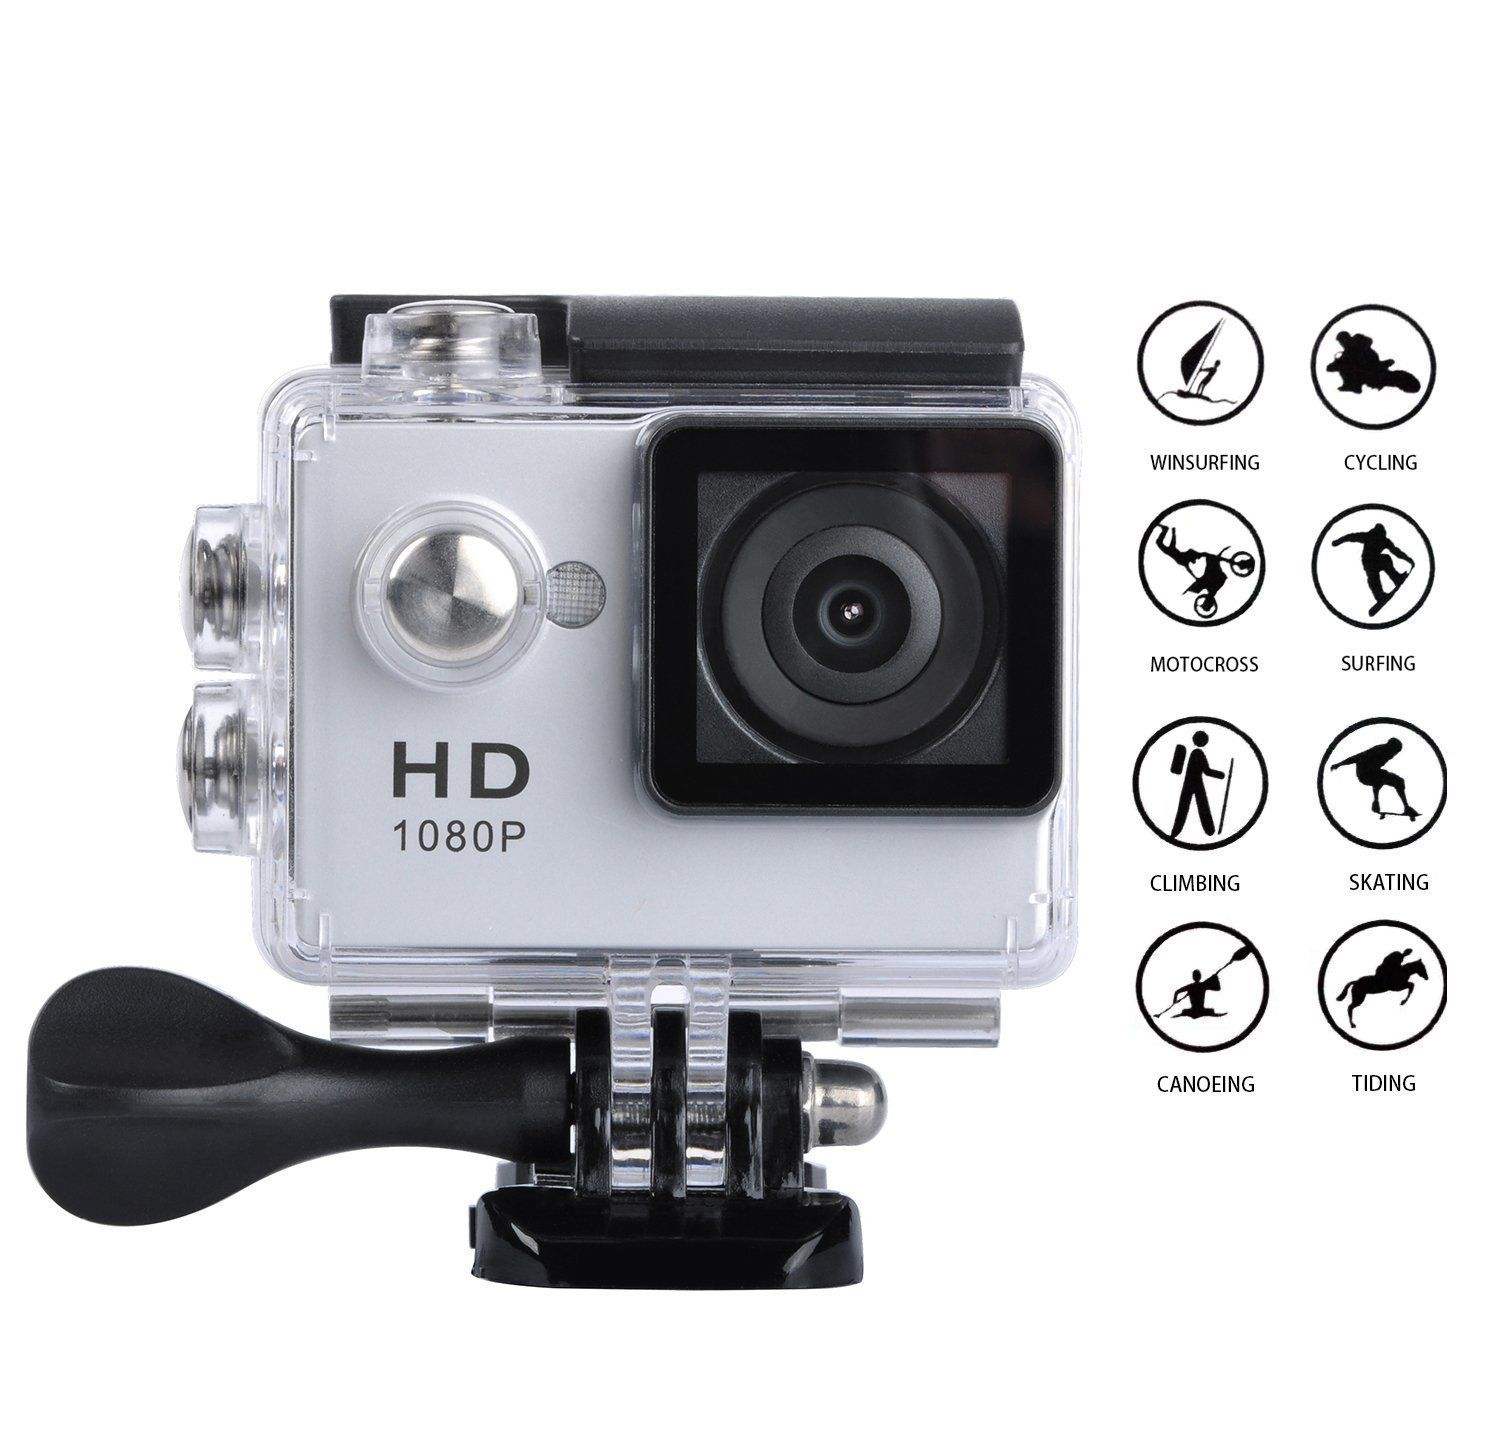 Goldwangwang 1080P Full HD 2 0 inch LCD Screen Waterproof Sports Action Camera Cam DV 5MP DVR Helmet Camera Sports DV Camcorder Extra 1 Batteries Silver